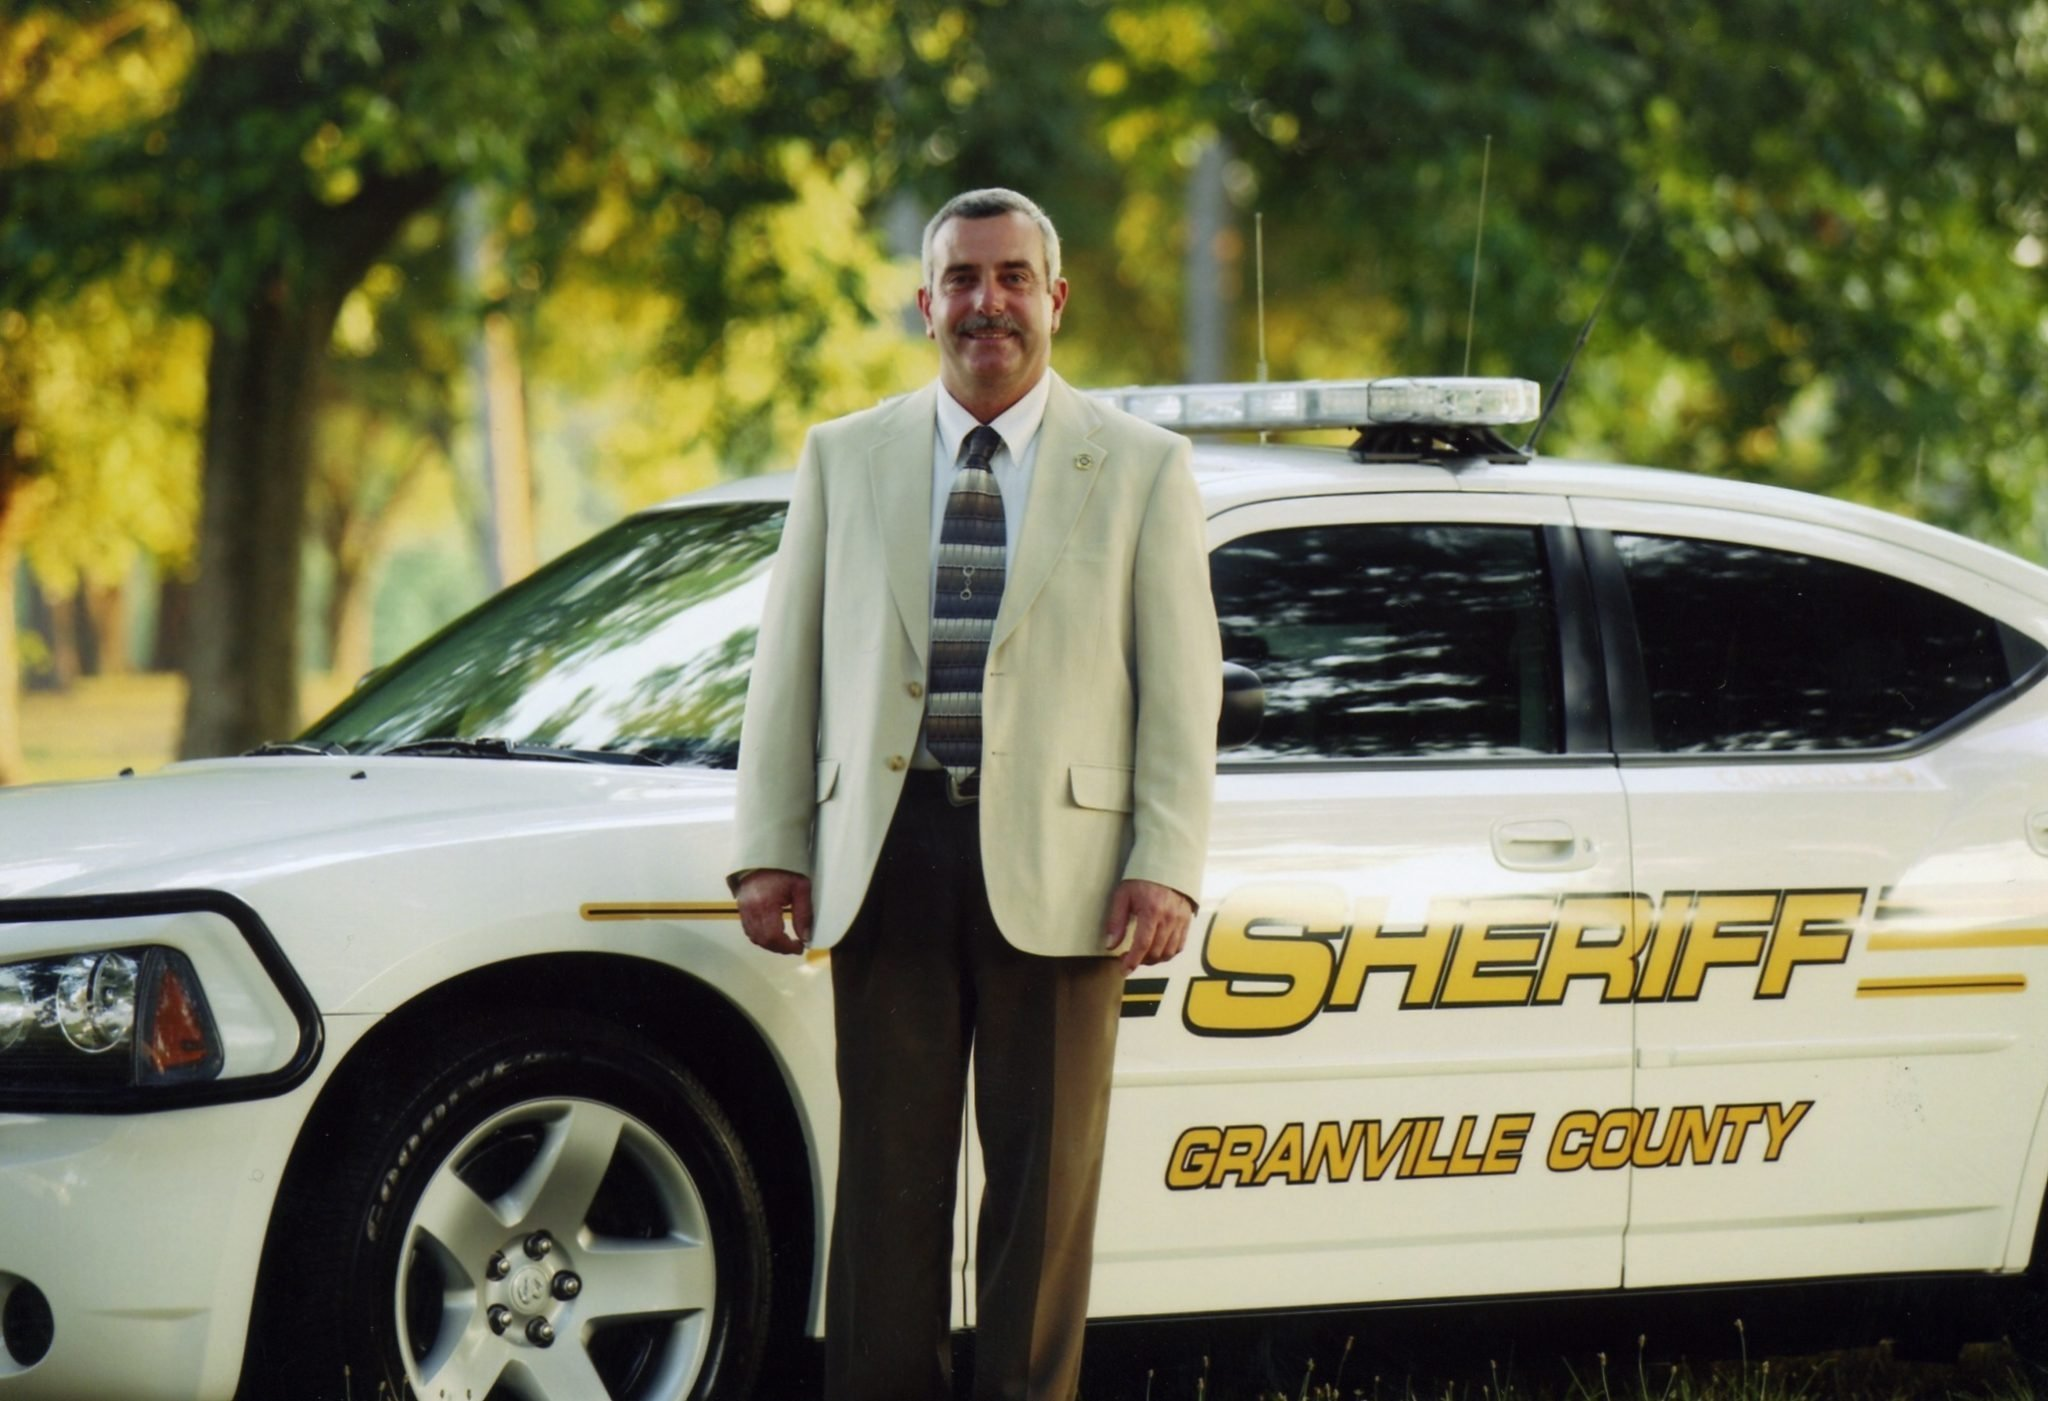 North Carolina sheriff suspended after indictment on criminal charges